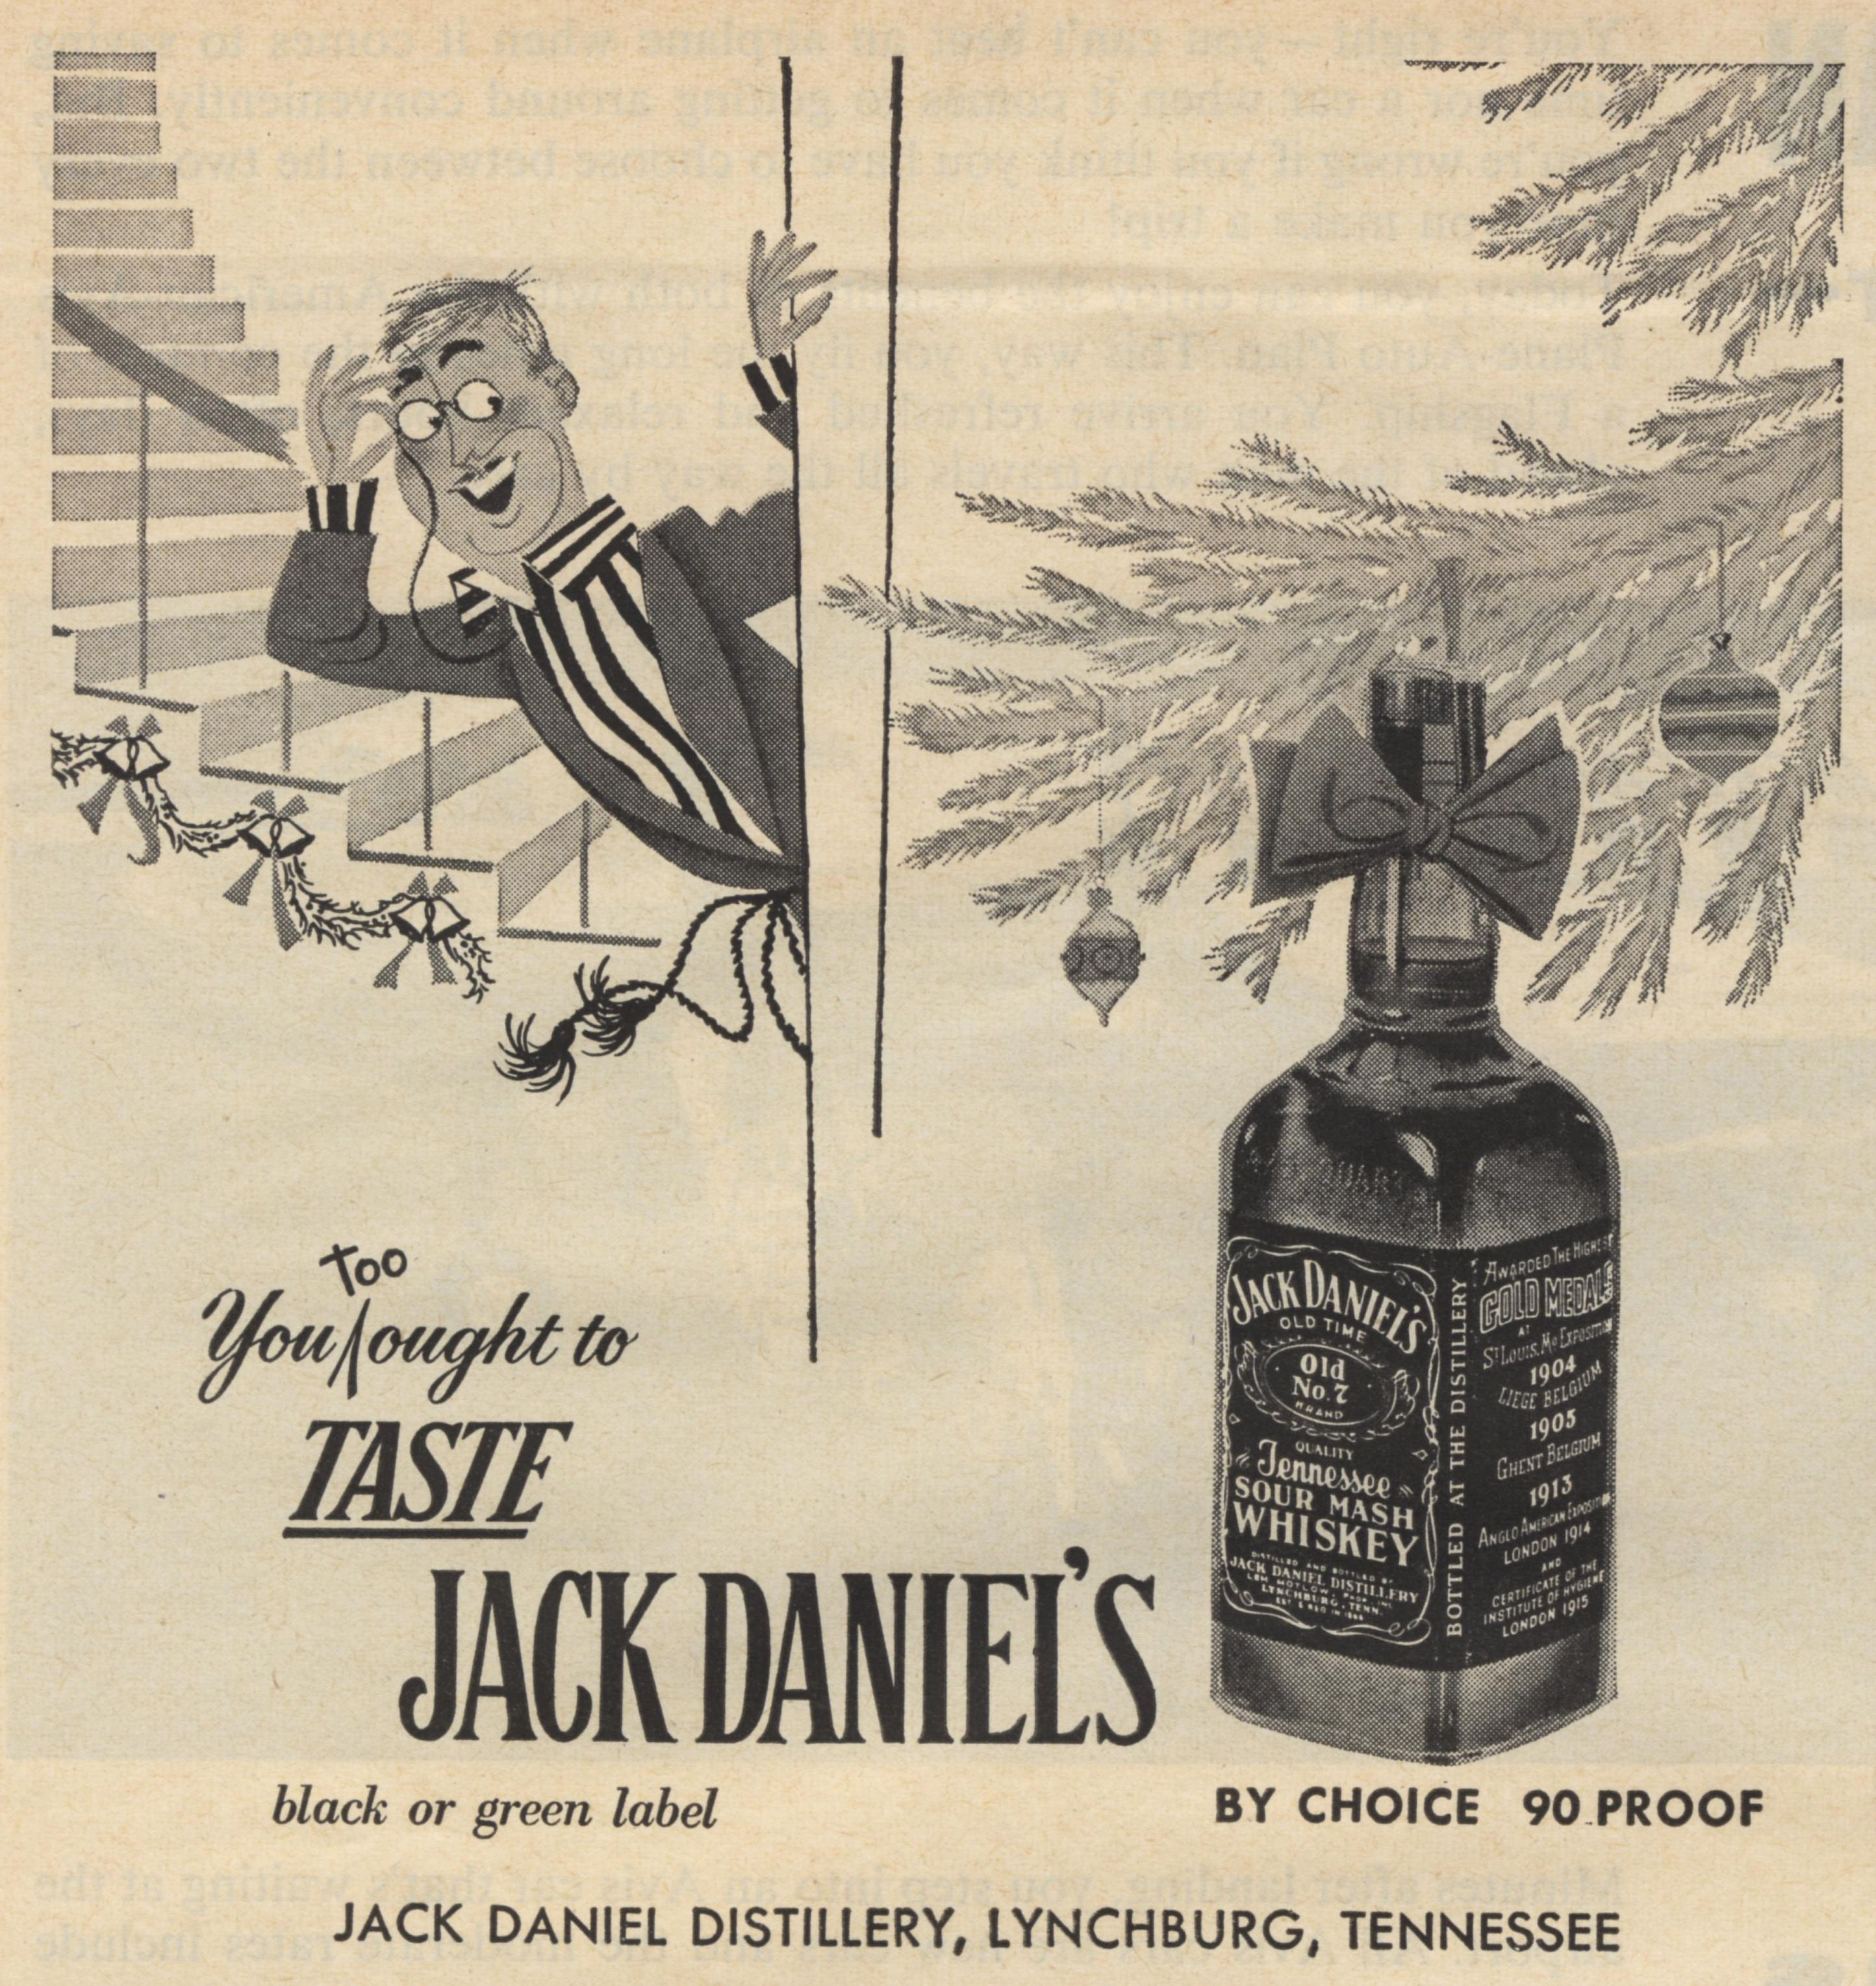 best images about jd presentation vintage style 17 best images about jd presentation vintage style shot glasses and jack o connell